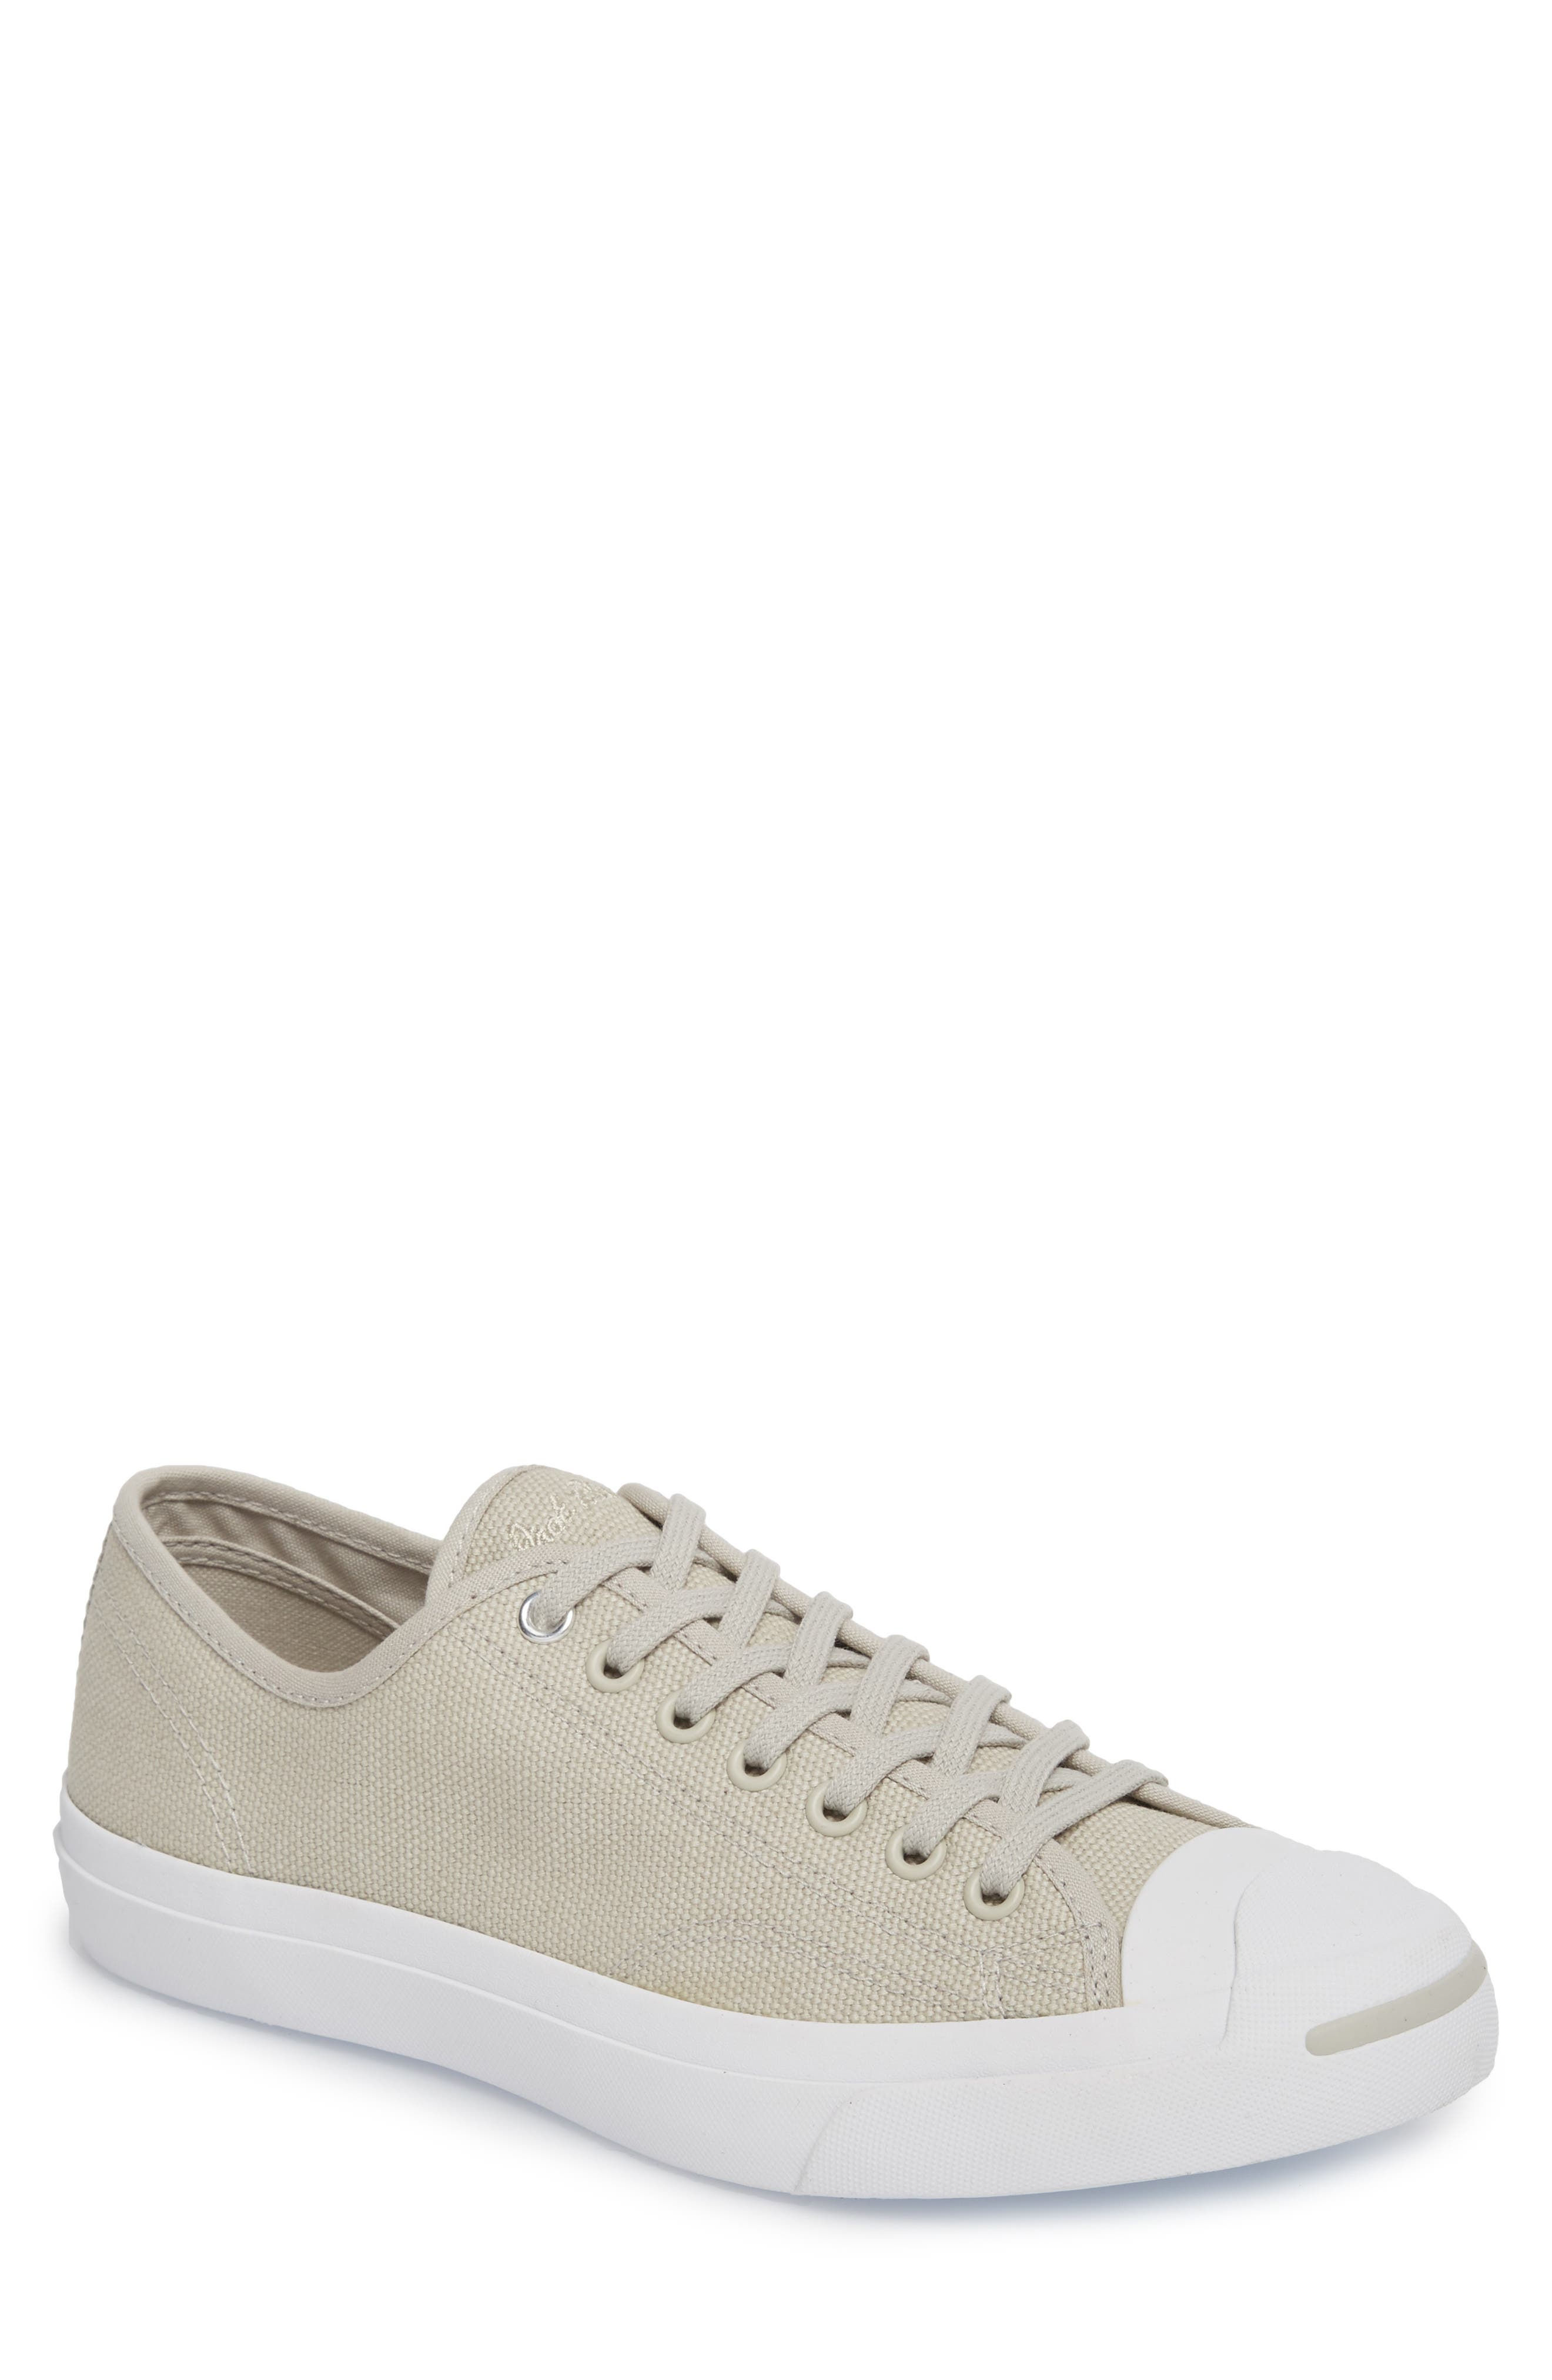 Jack Purcell Sneaker,                         Main,                         color, 026